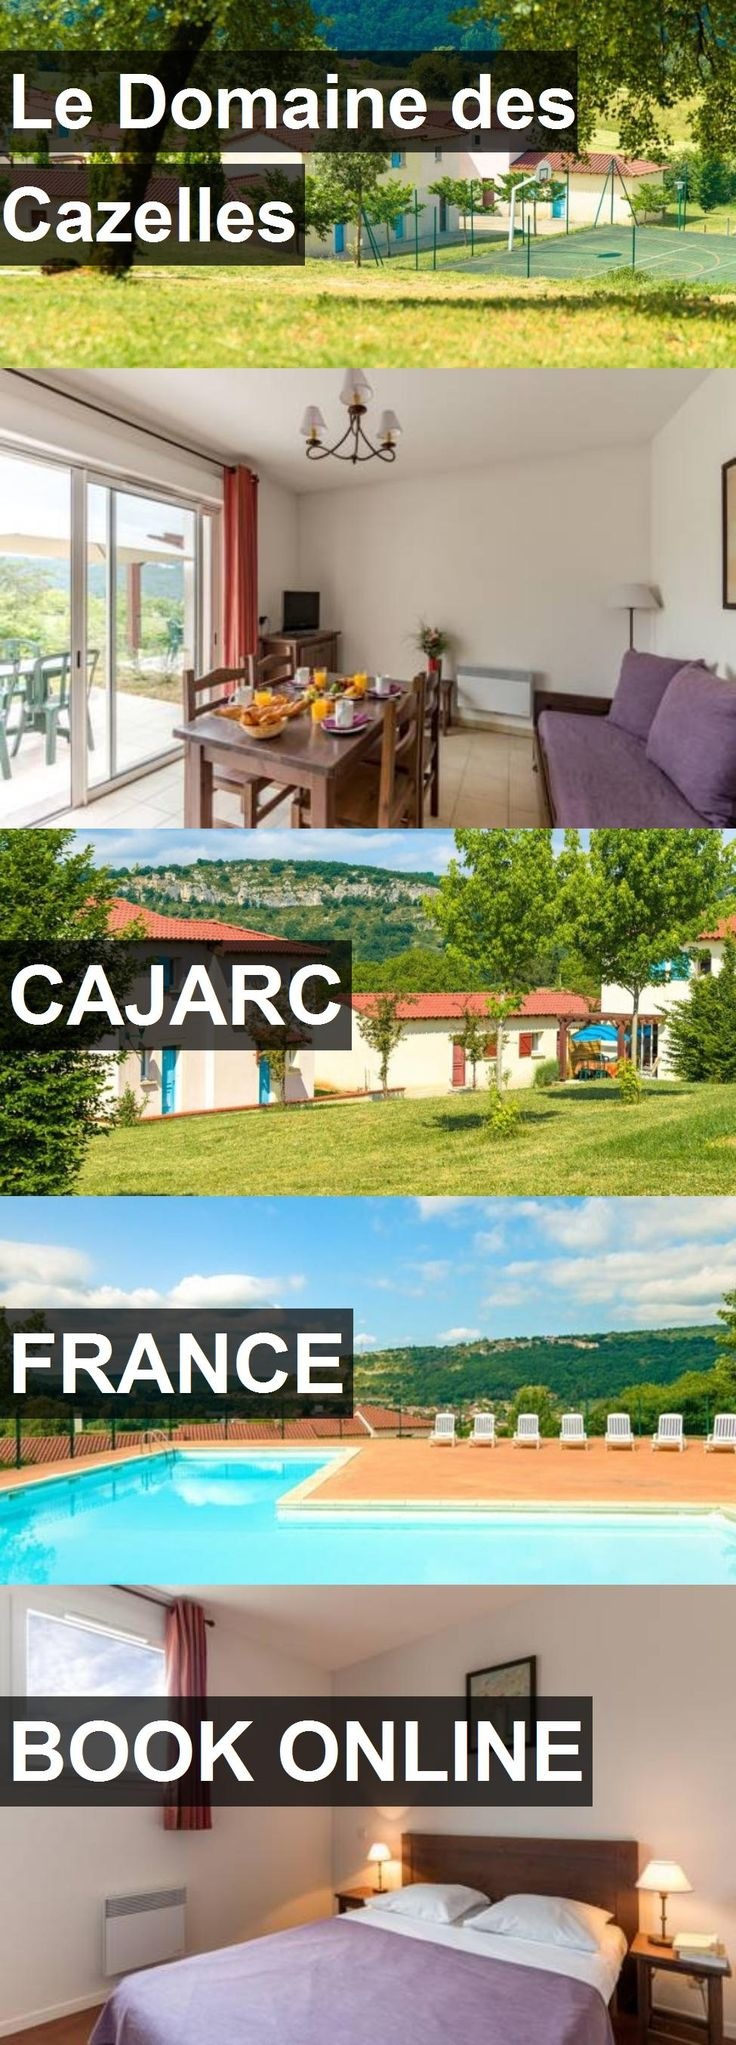 Hotel Le Domaine des Cazelles in Cajarc, France. For more information, photos, reviews and best prices please follow the link. #France #Cajarc #travel #vacation #hotel